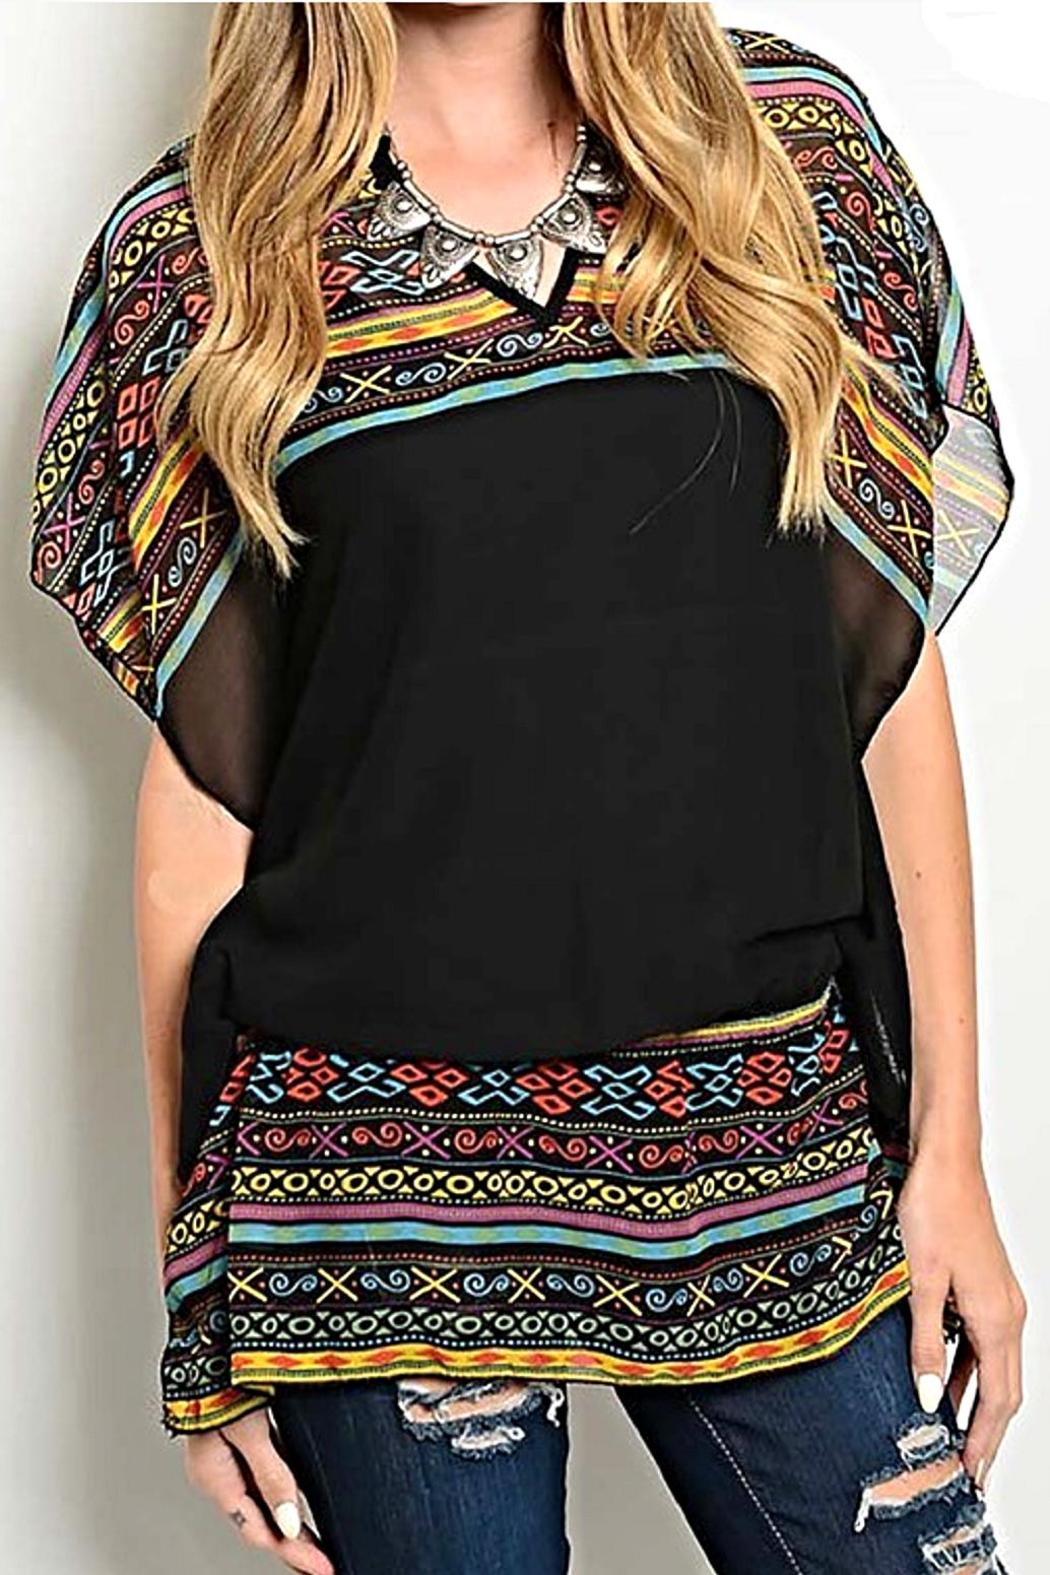 Rousseau Tribal Print Blouse - Main Image